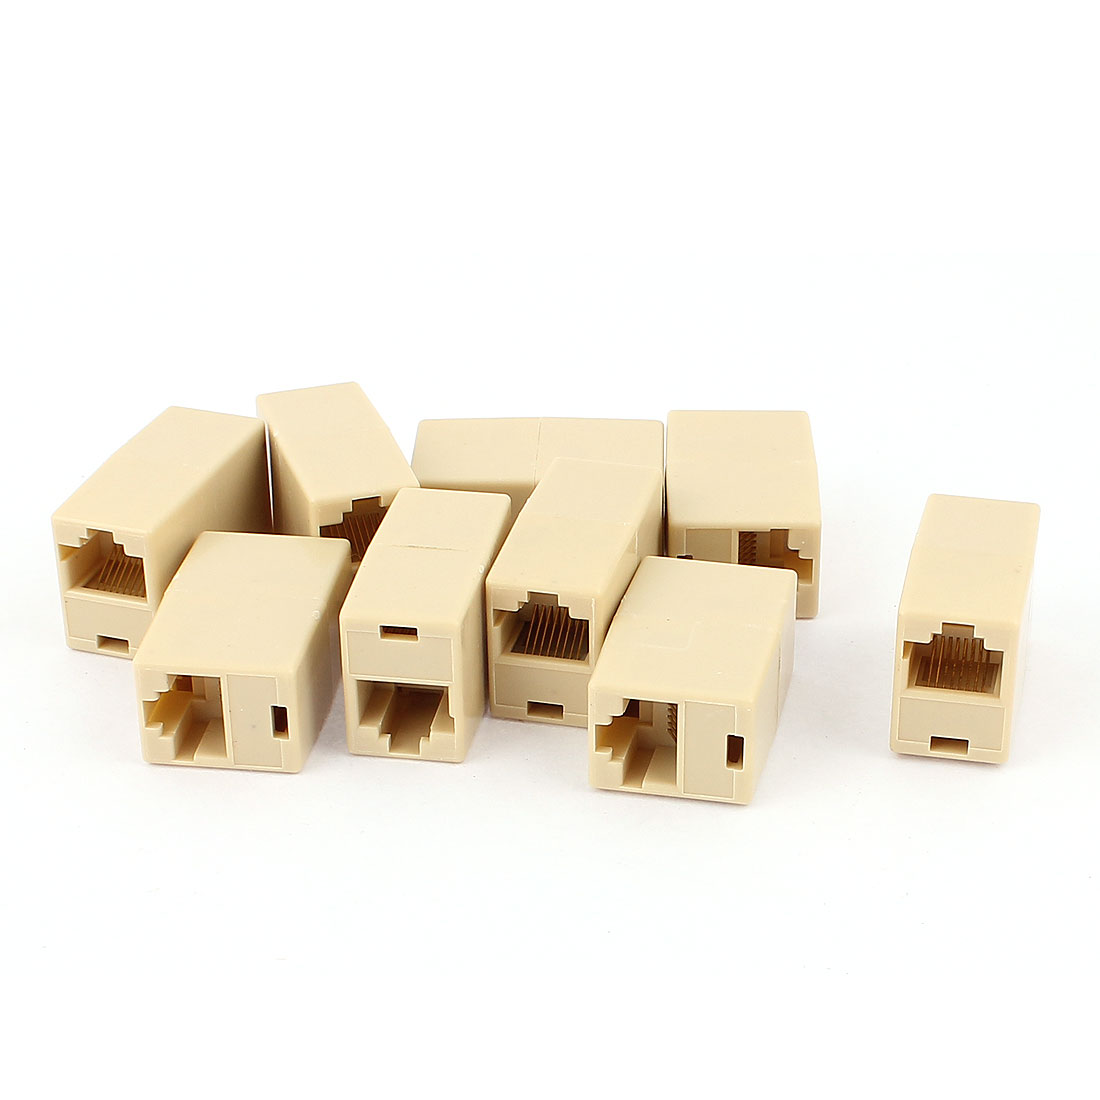 9 Pcs RJ45 8P8C Female to Female F/F Network Cable Coupler Connector Adapter Extender Joiner